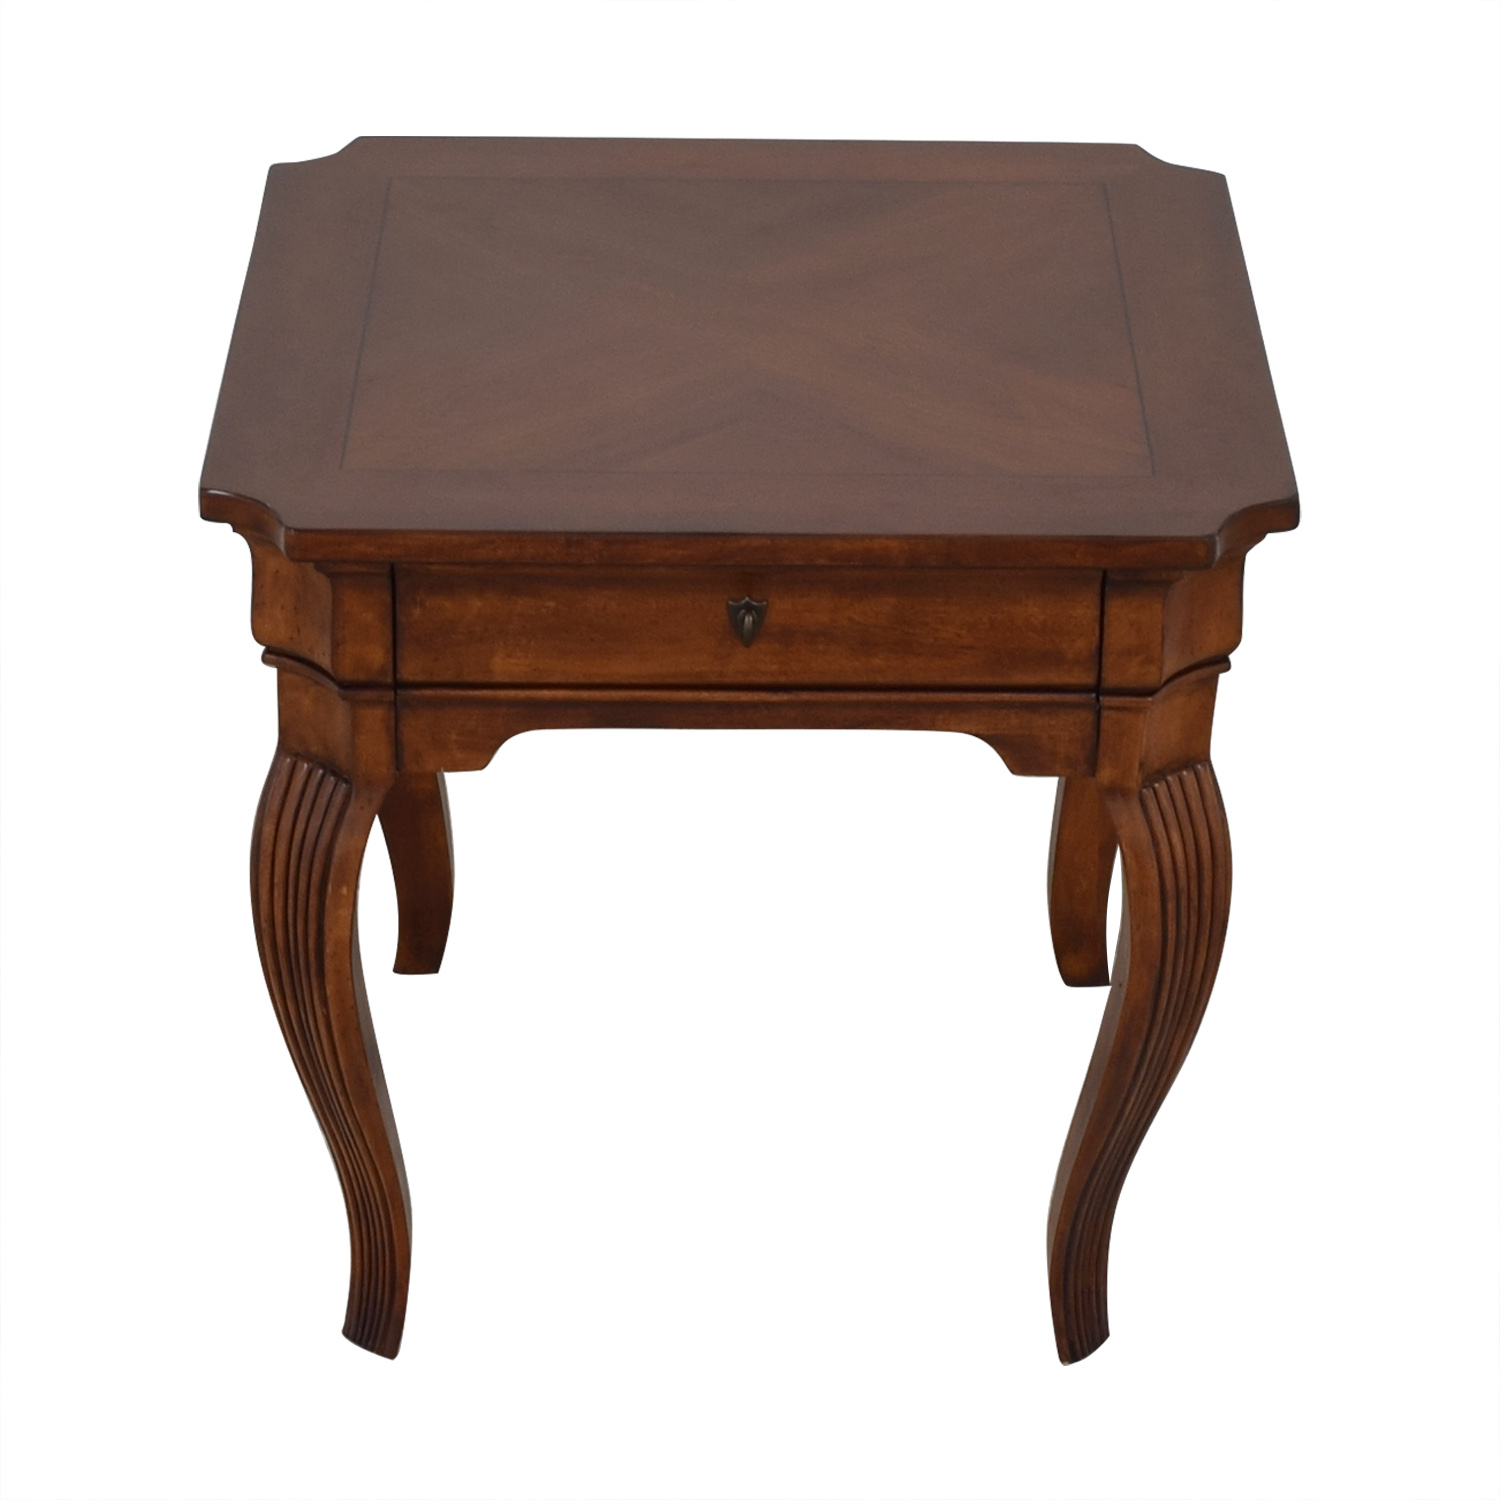 Stanley Furniture Stanley Furniture Square Lamp Table price